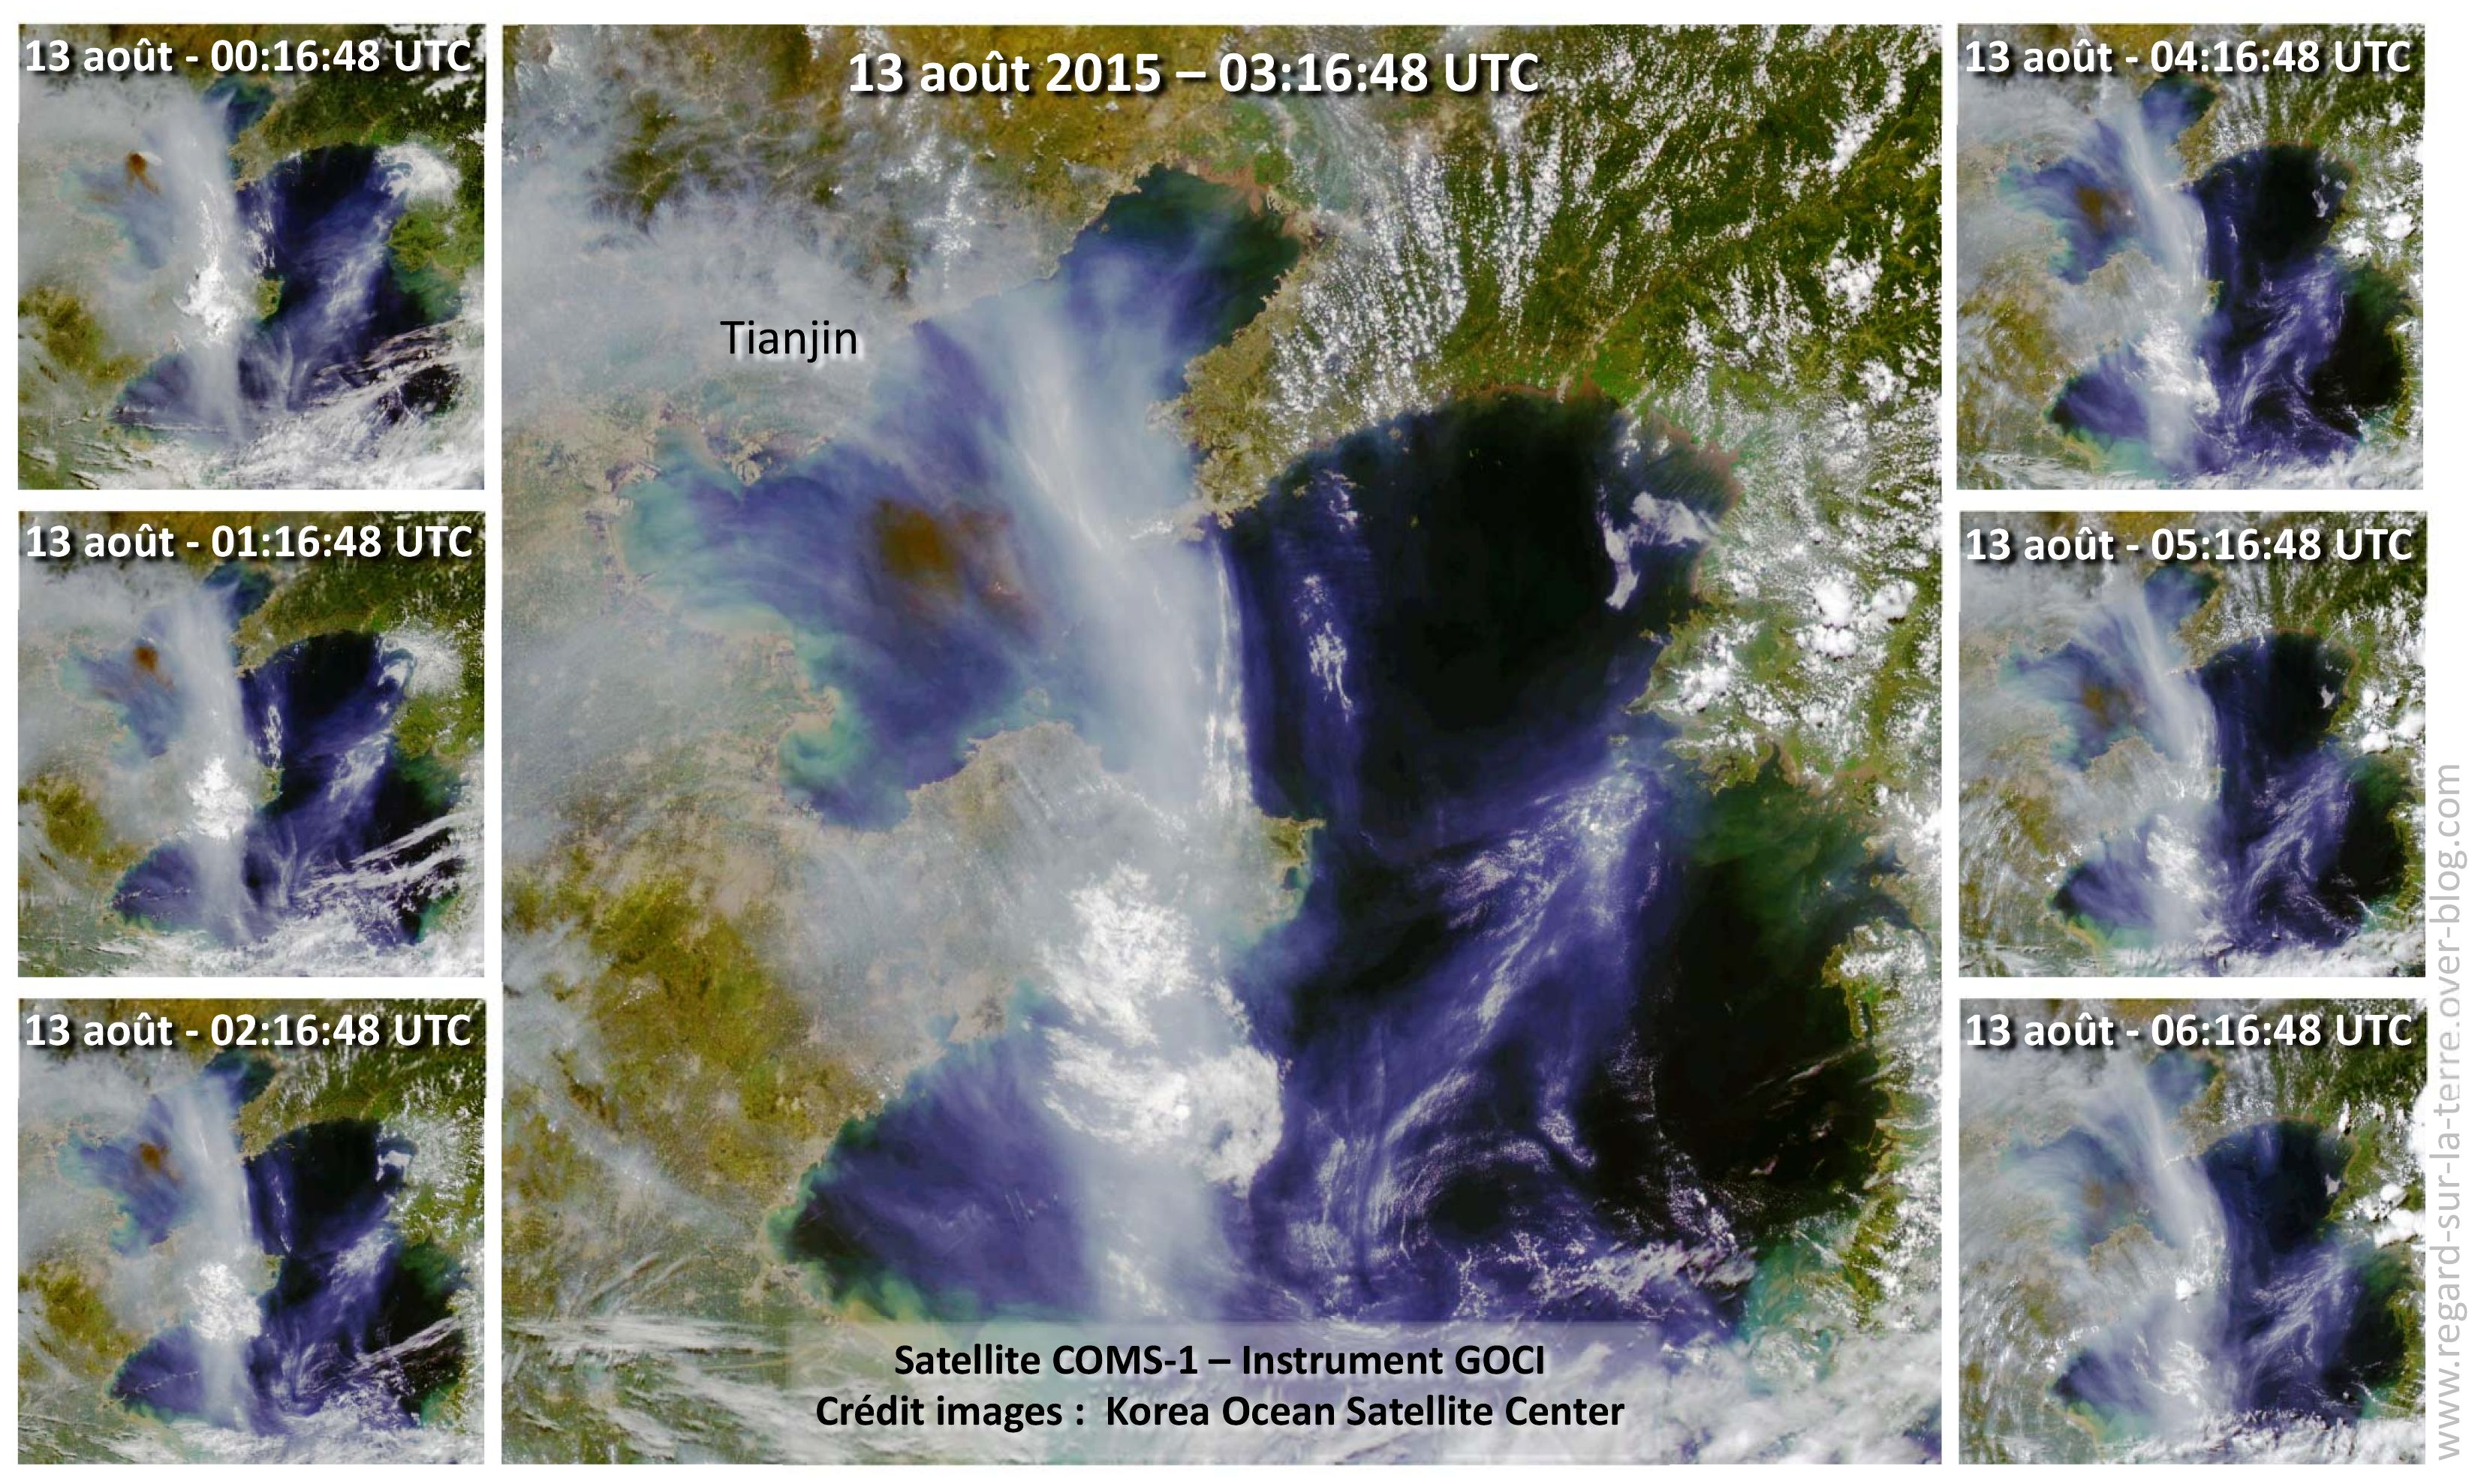 Explosion - Tianjin - Chine - Séquence d'images - Satellite COM-1 - Instrument GOCI - Propagation nuage de fumée noire - 7 images acquises le 13 août 2015 entre 00:16:48 et 06:16:48 UTC. Korea Ocean Satellite Center (KOSC).